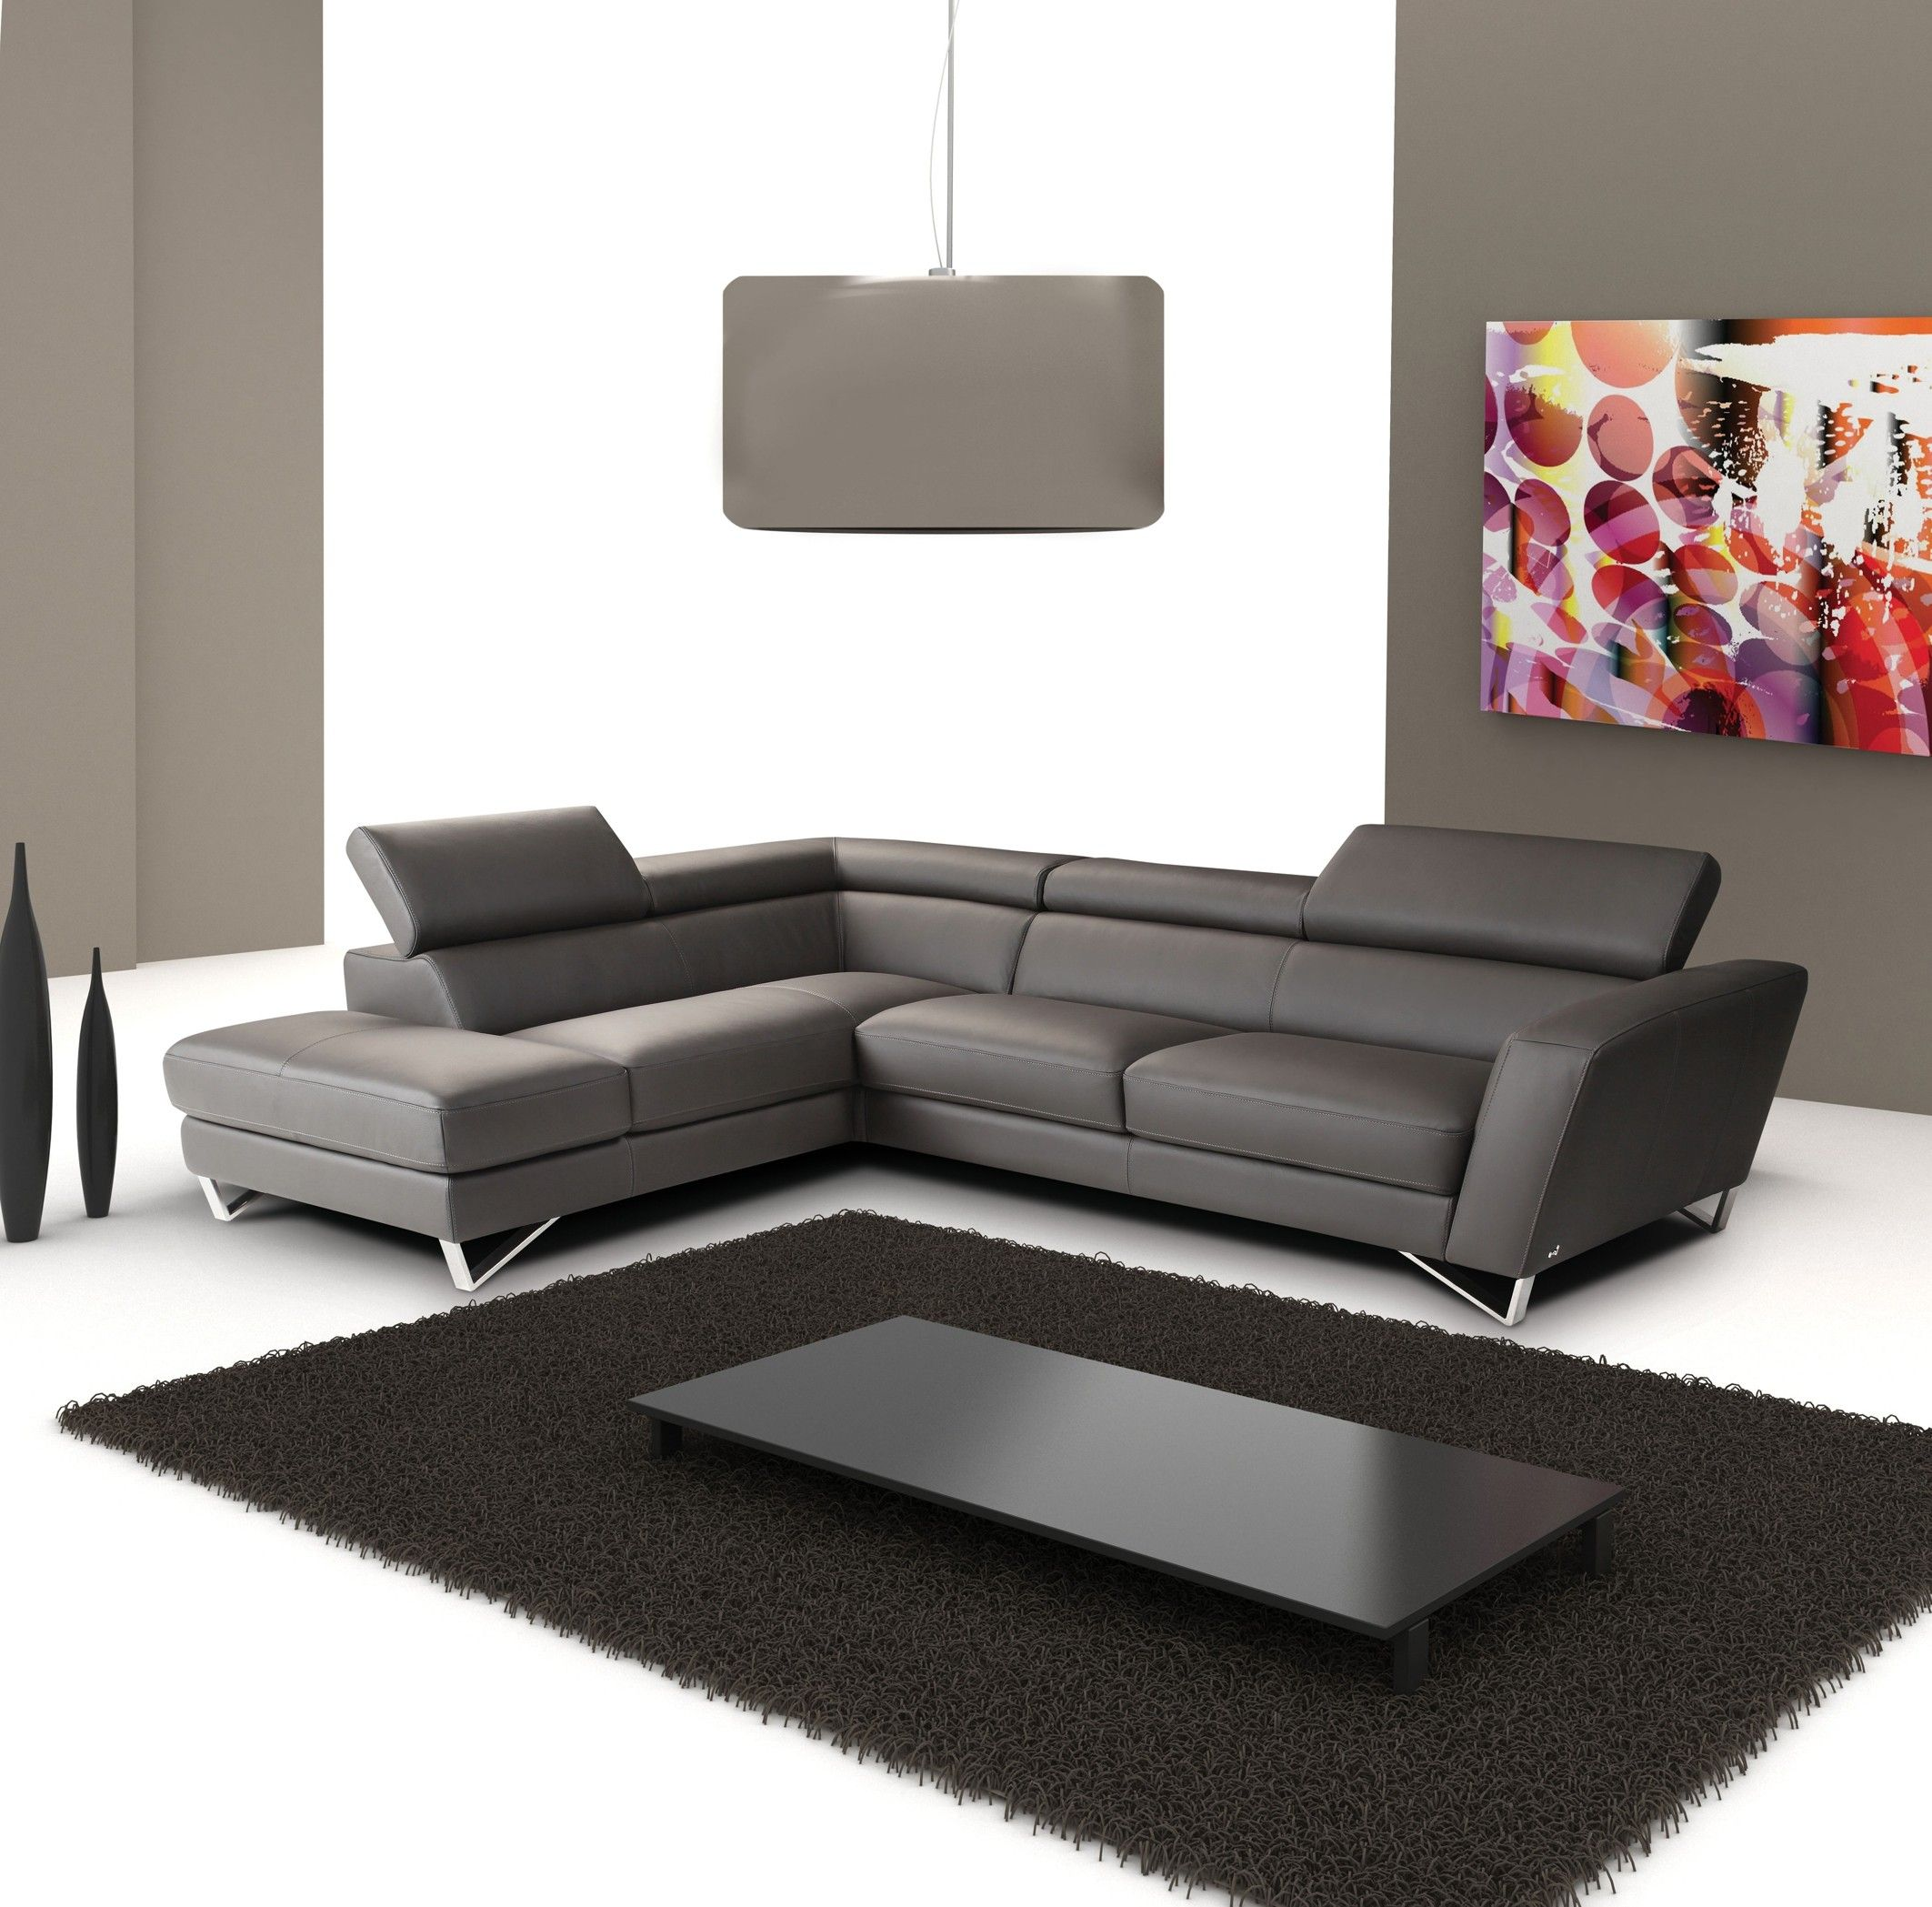 cool contemporary sectional sofas  best contemporary sectional  - cool contemporary sectional sofas  best contemporary sectional sofas for modern sofa inspiration with contemporary